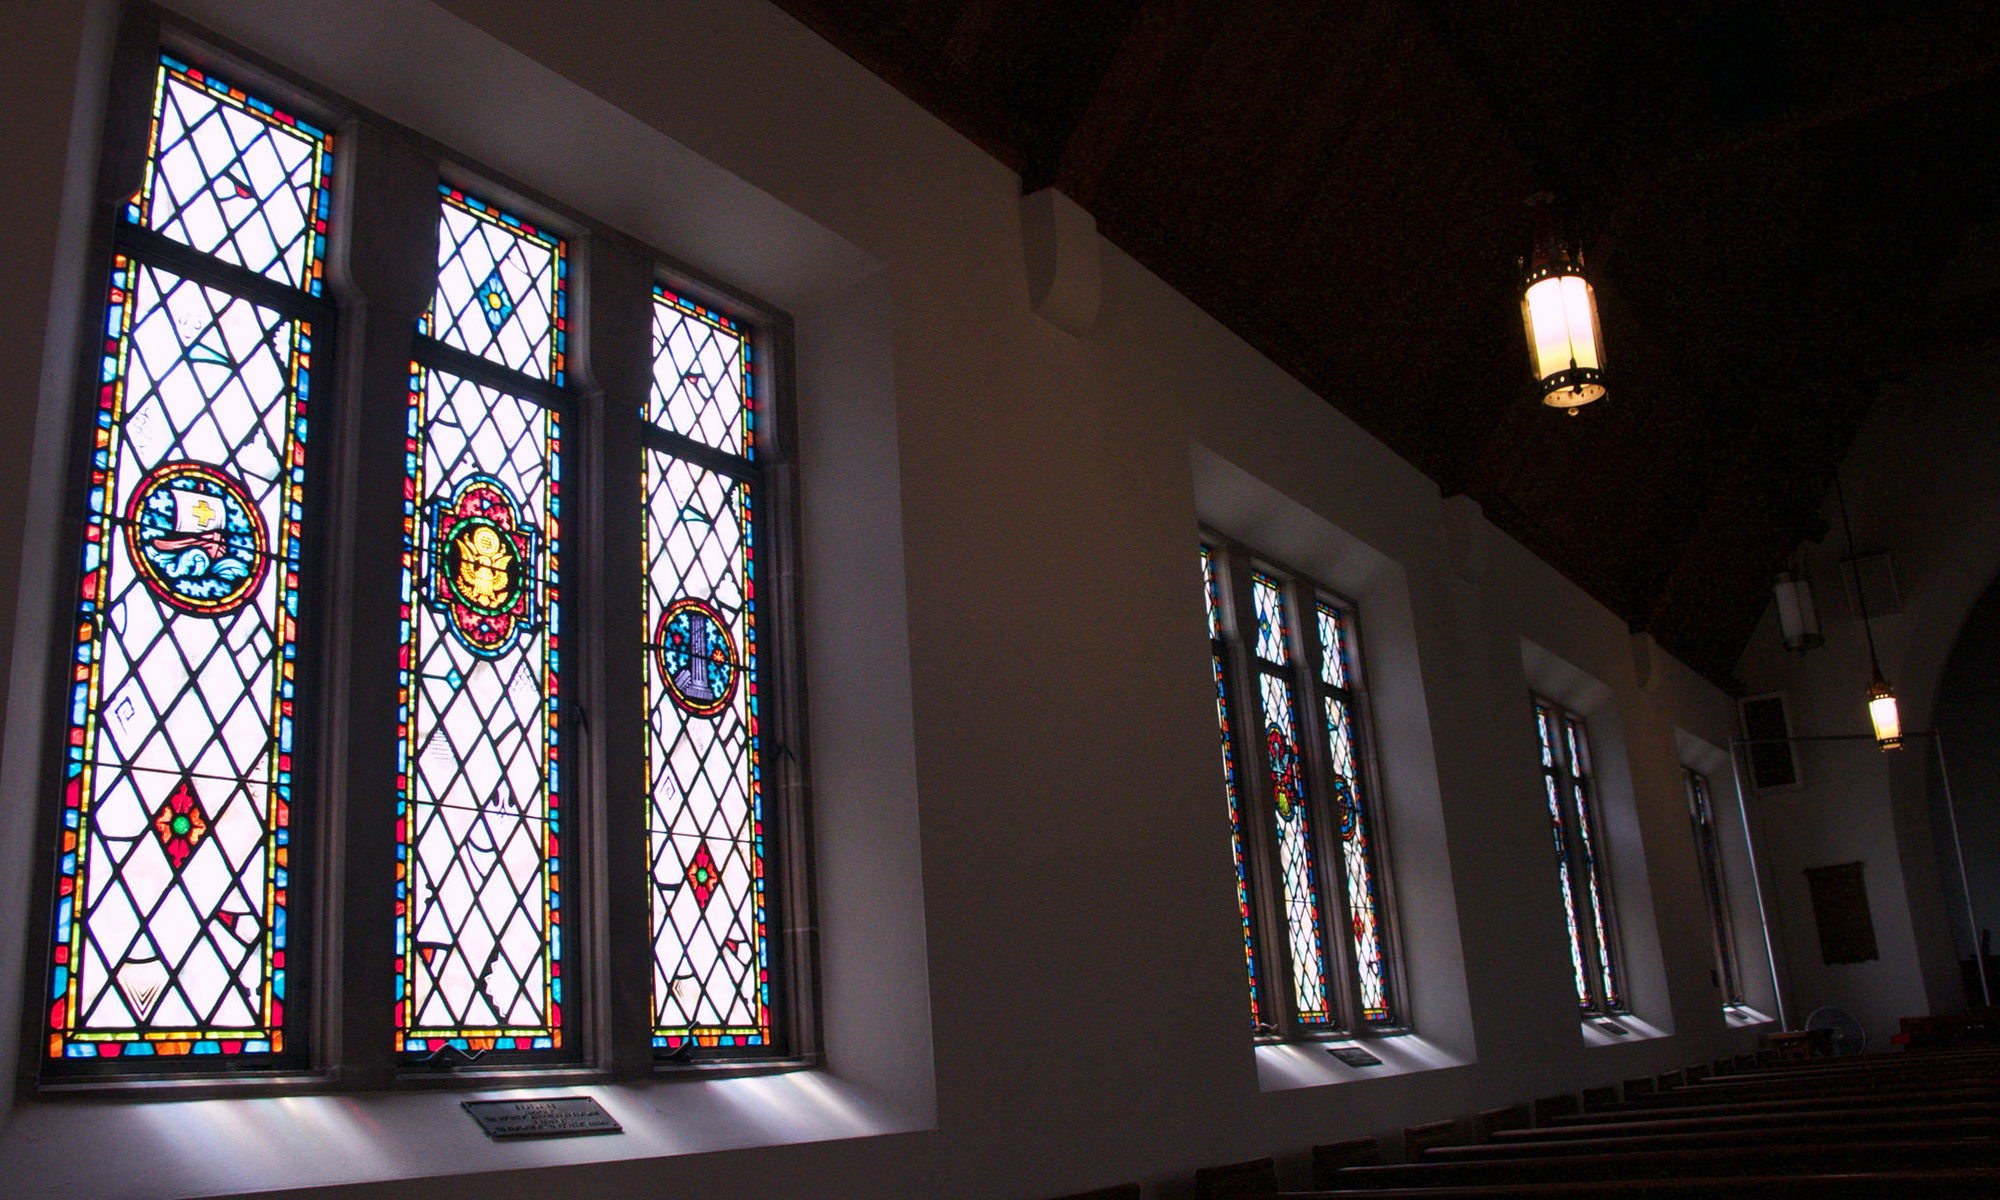 The windows in Memorial Chapel at Lake Junaluska